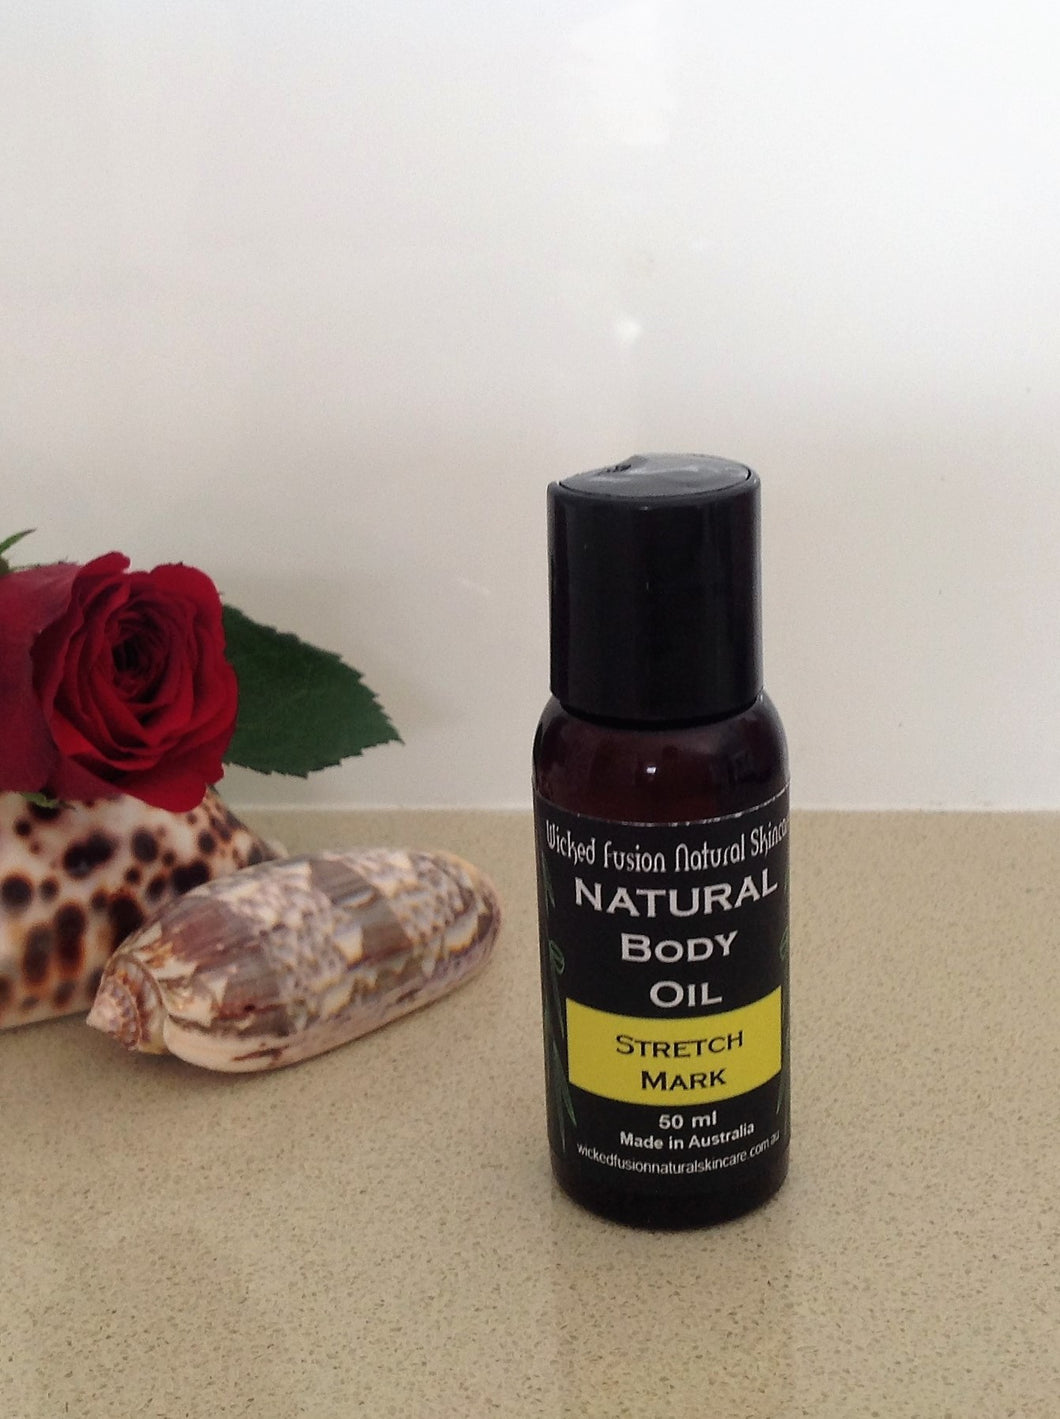 Stretch Mark Body Oil